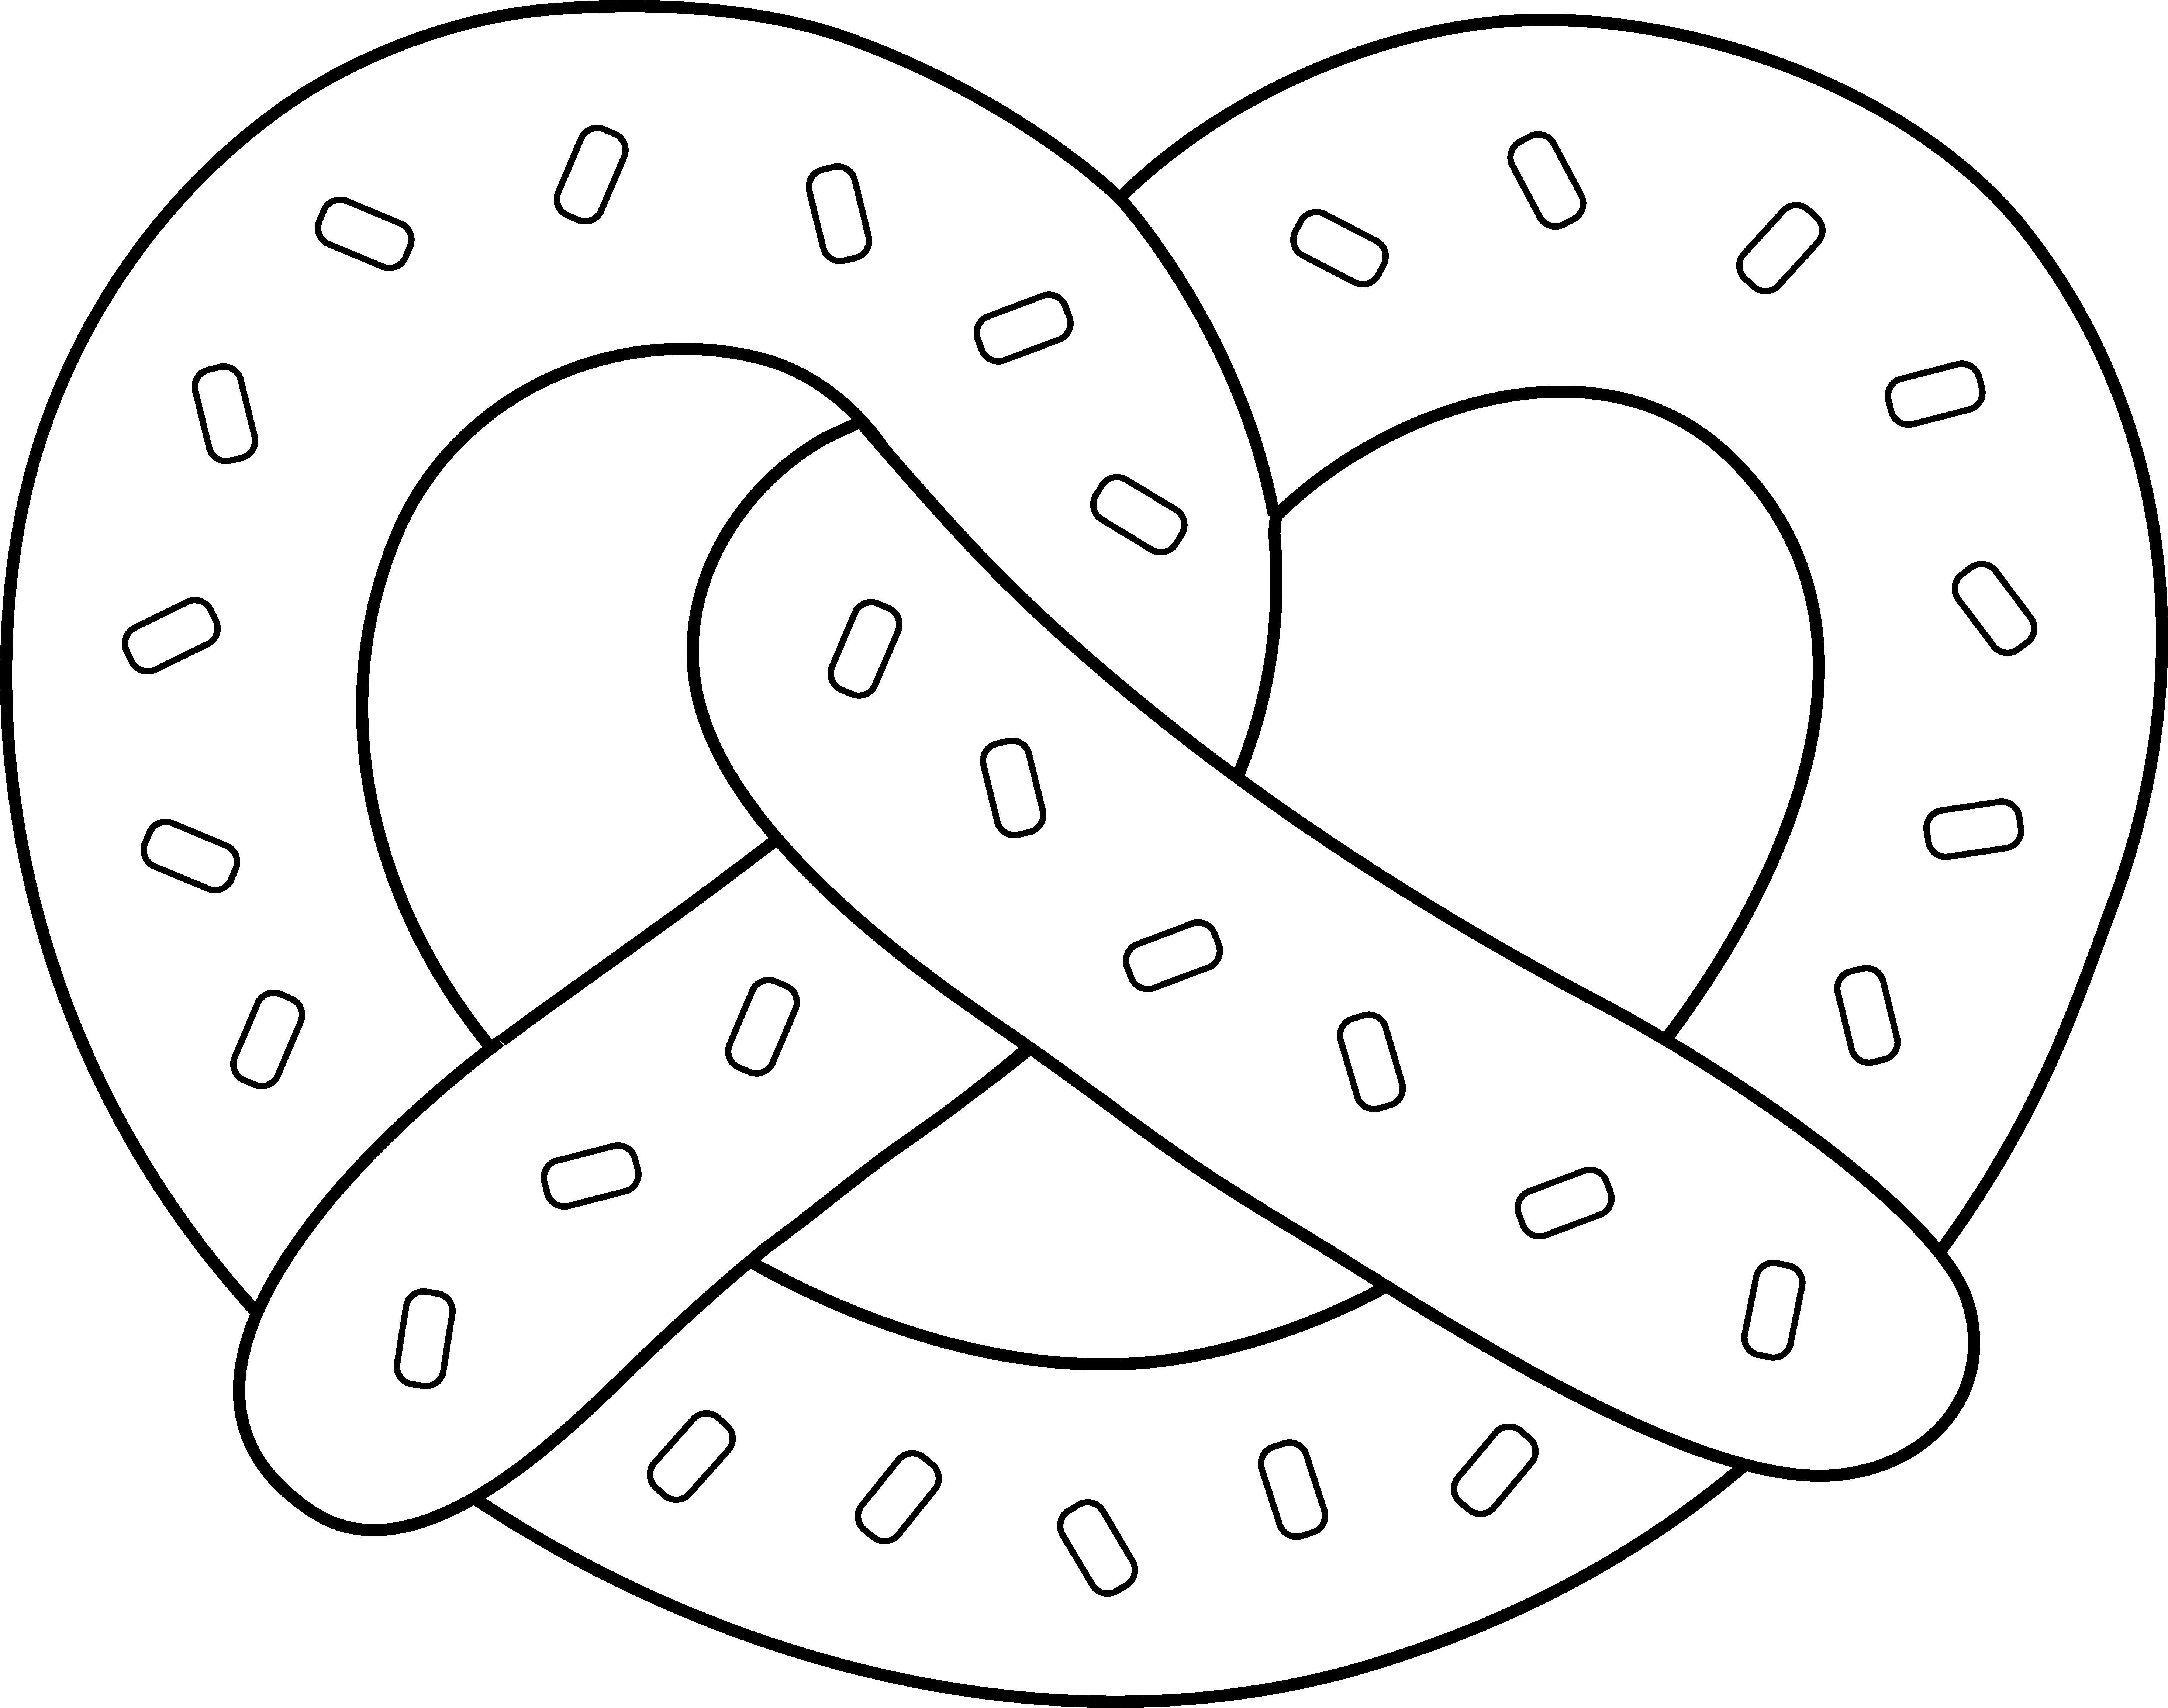 Free Pretzel Clipart Black And White, Download Free Clip Art.